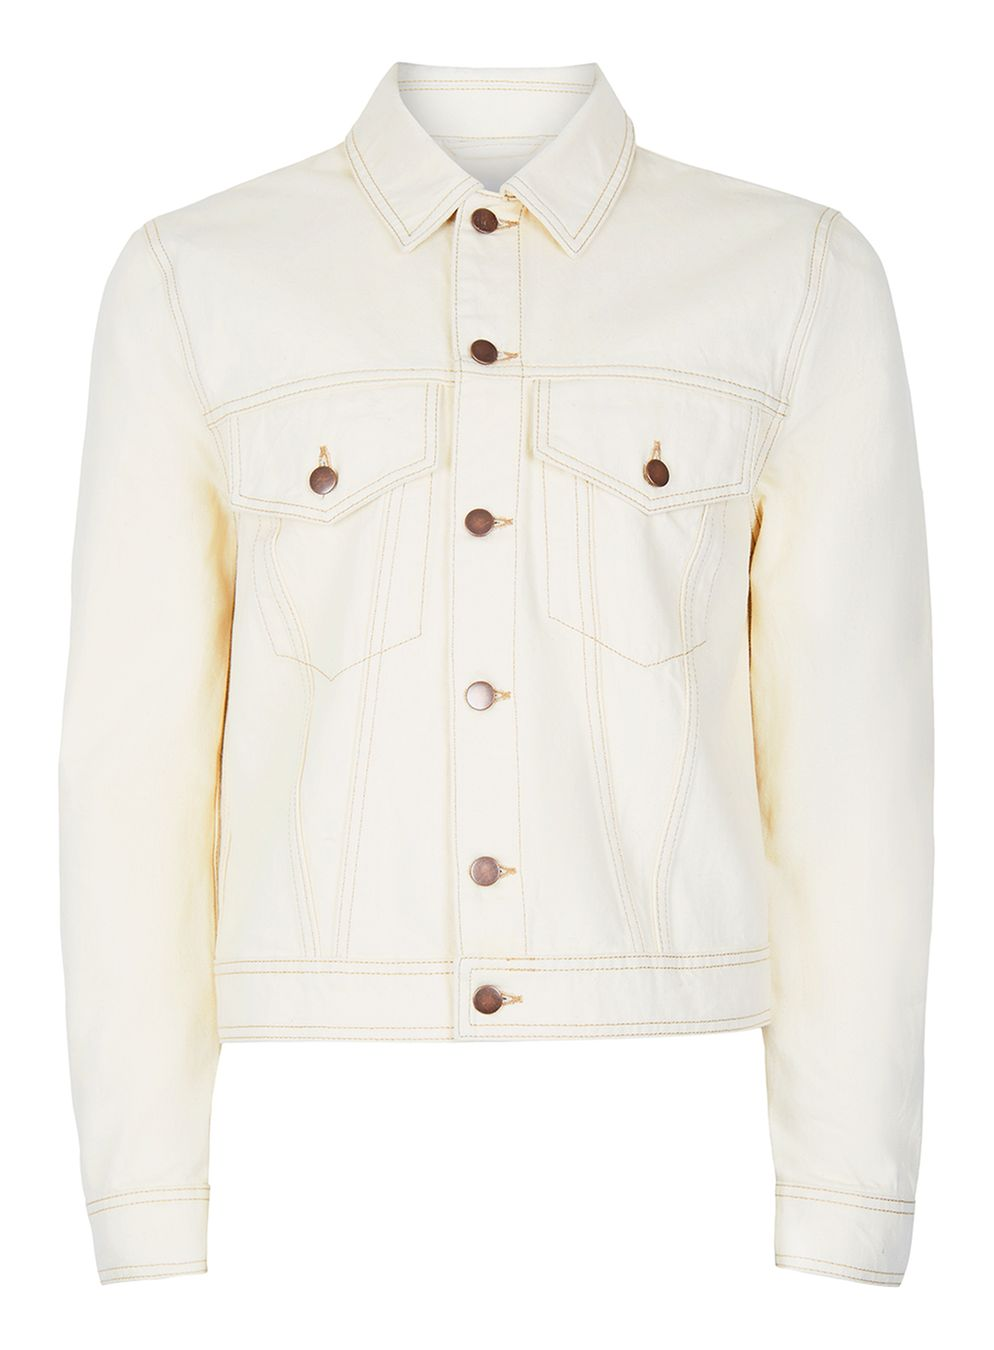 topman-white-denim-trucker-jacket